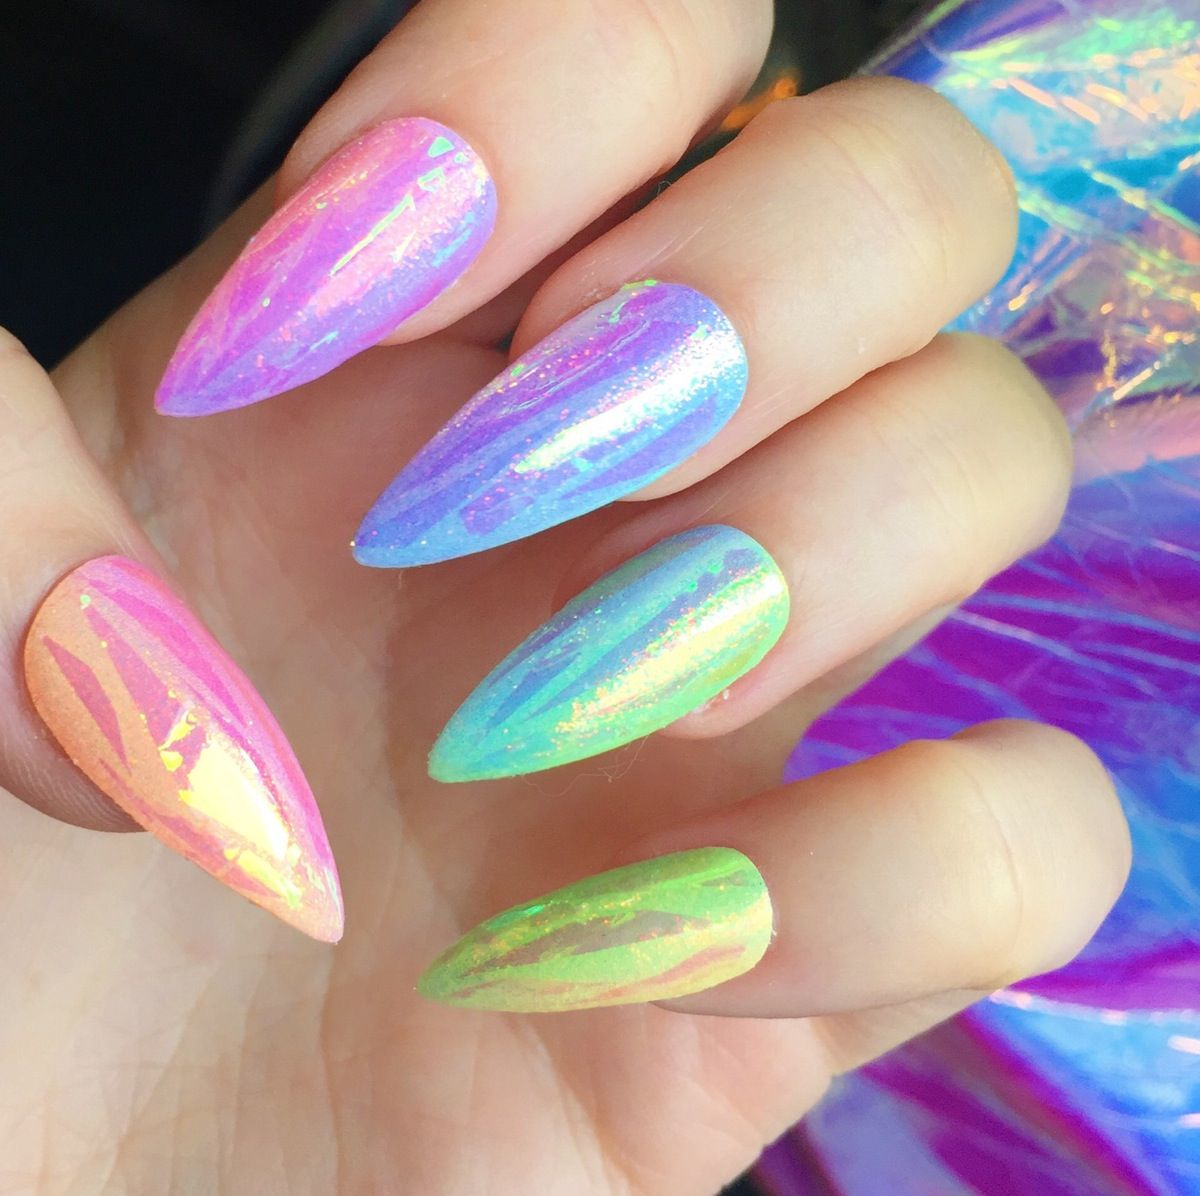 These Nails Be Hella Ombré Rainbow Covered In An Illusion Shimmer With Slices Of Holo Need I Say More Designed And Hand Painted By Myself